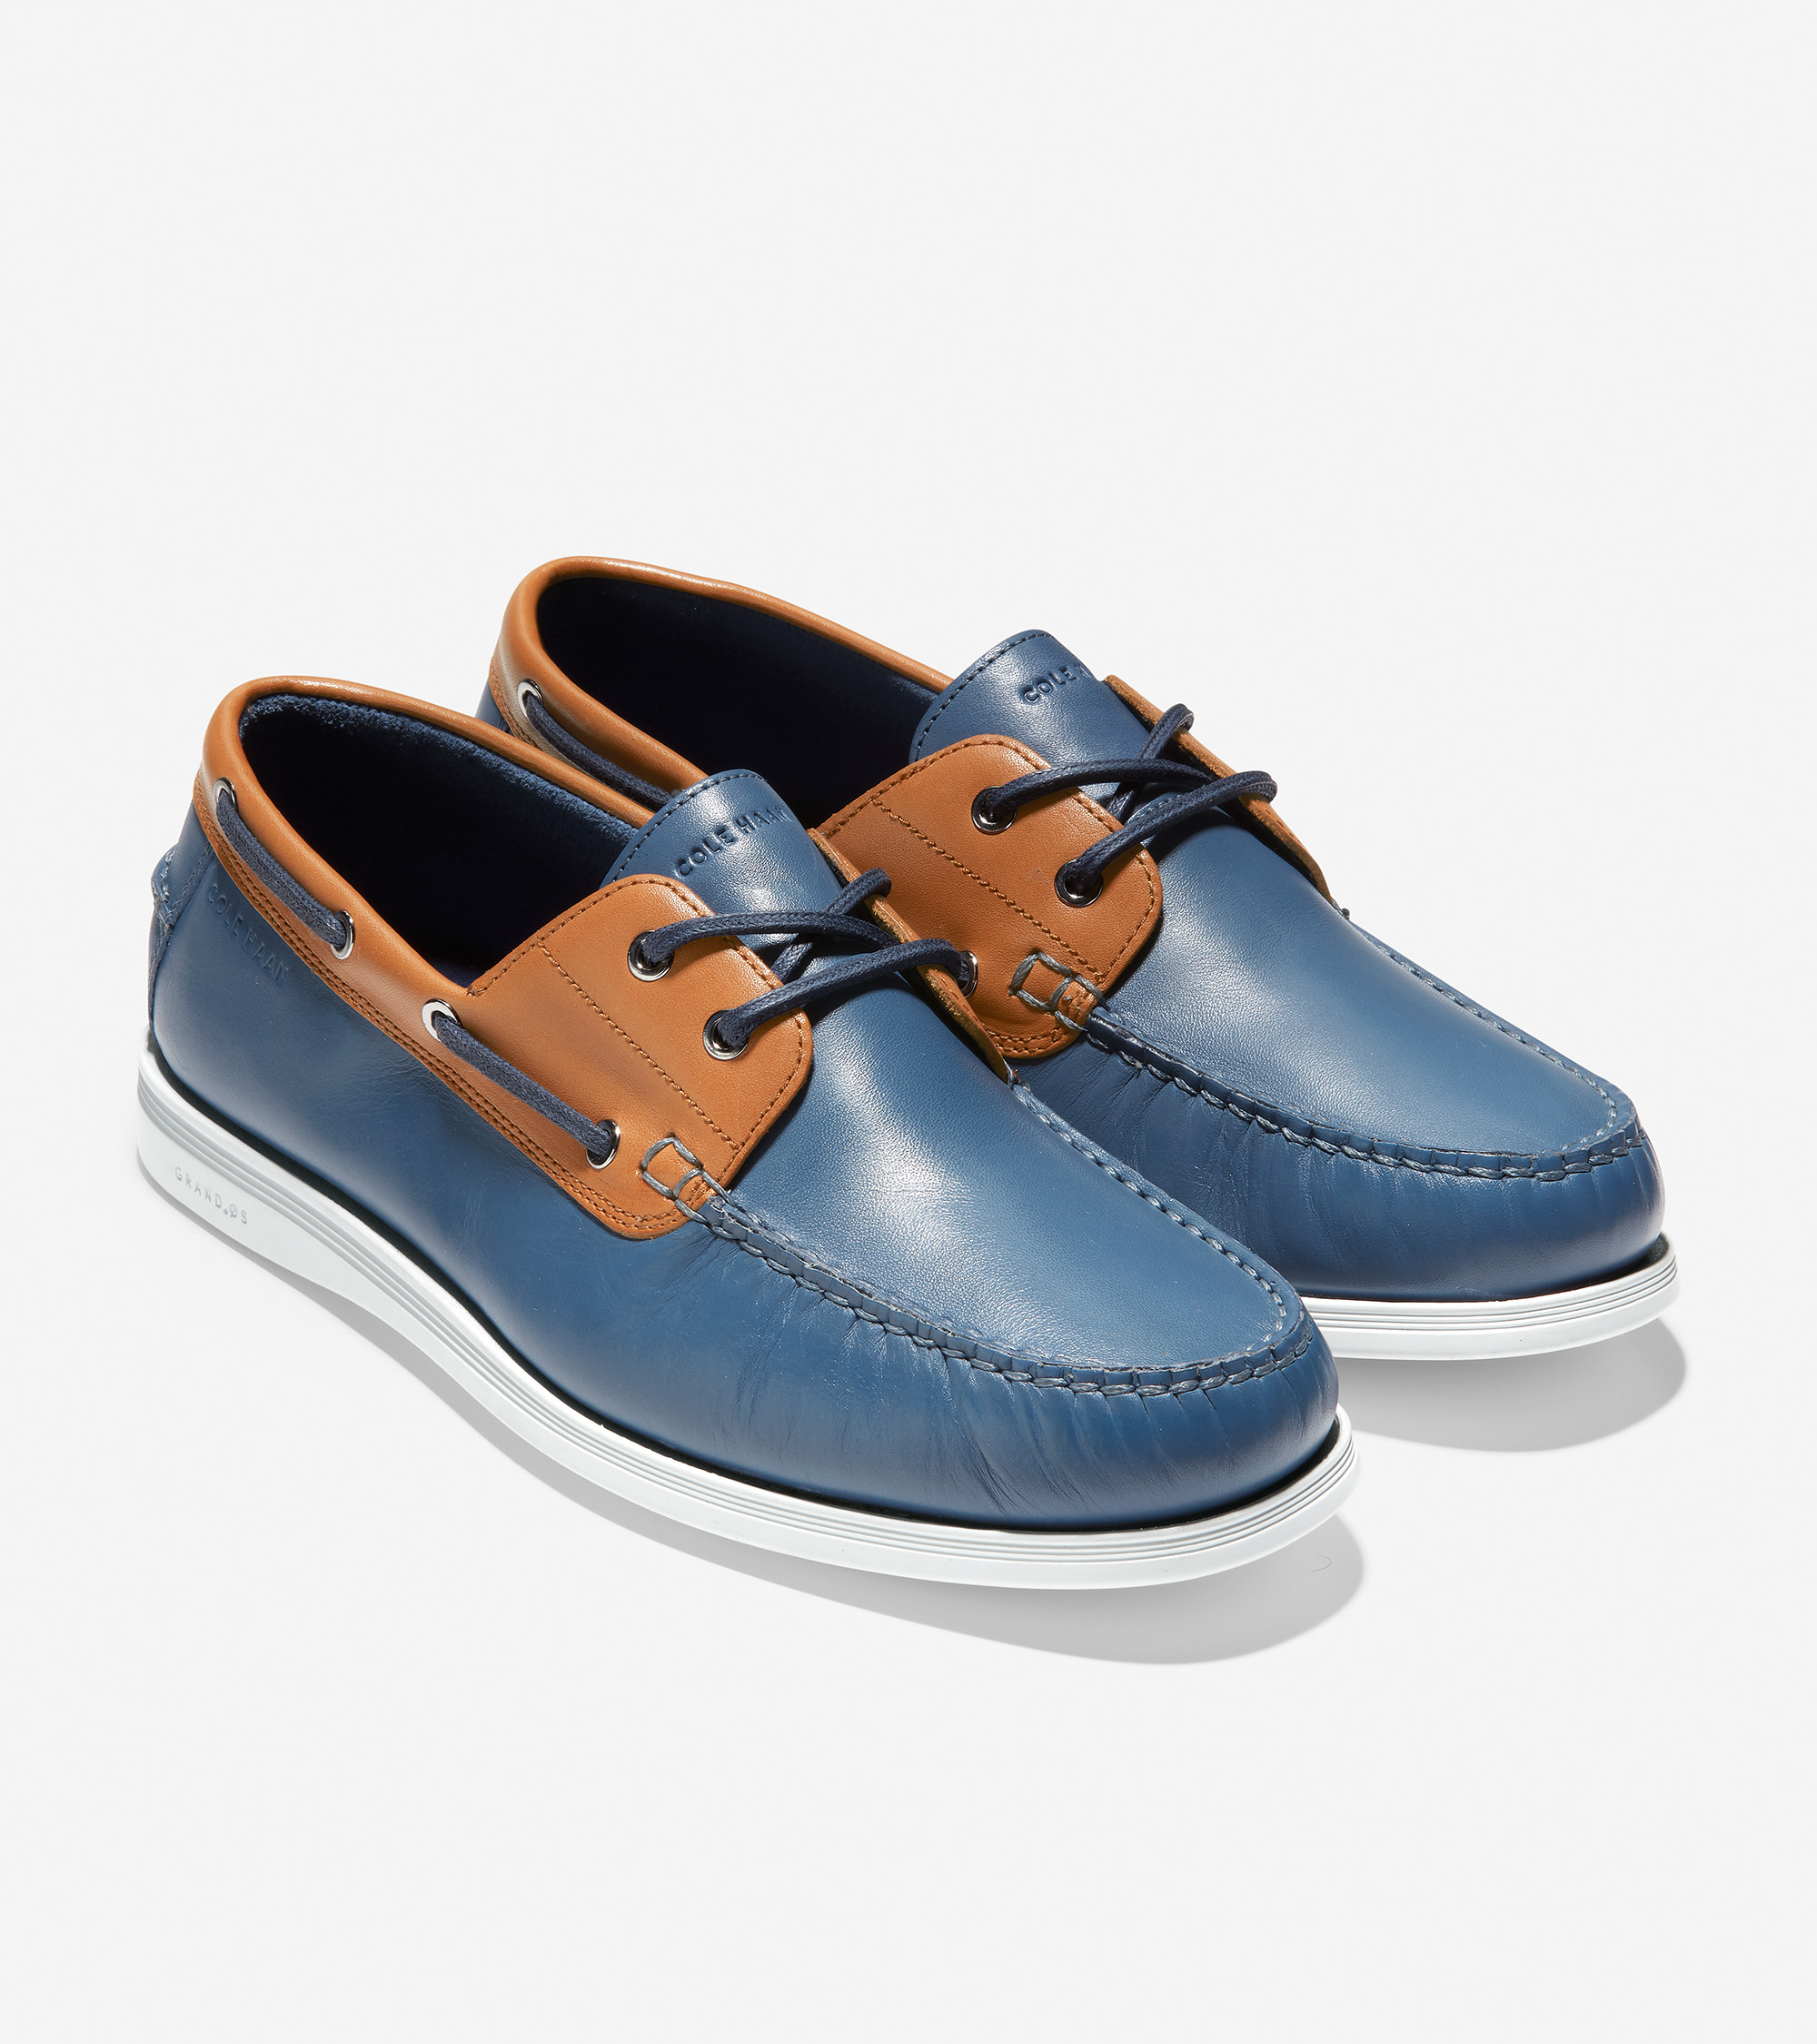 Cole Haan Cornell boat shoe